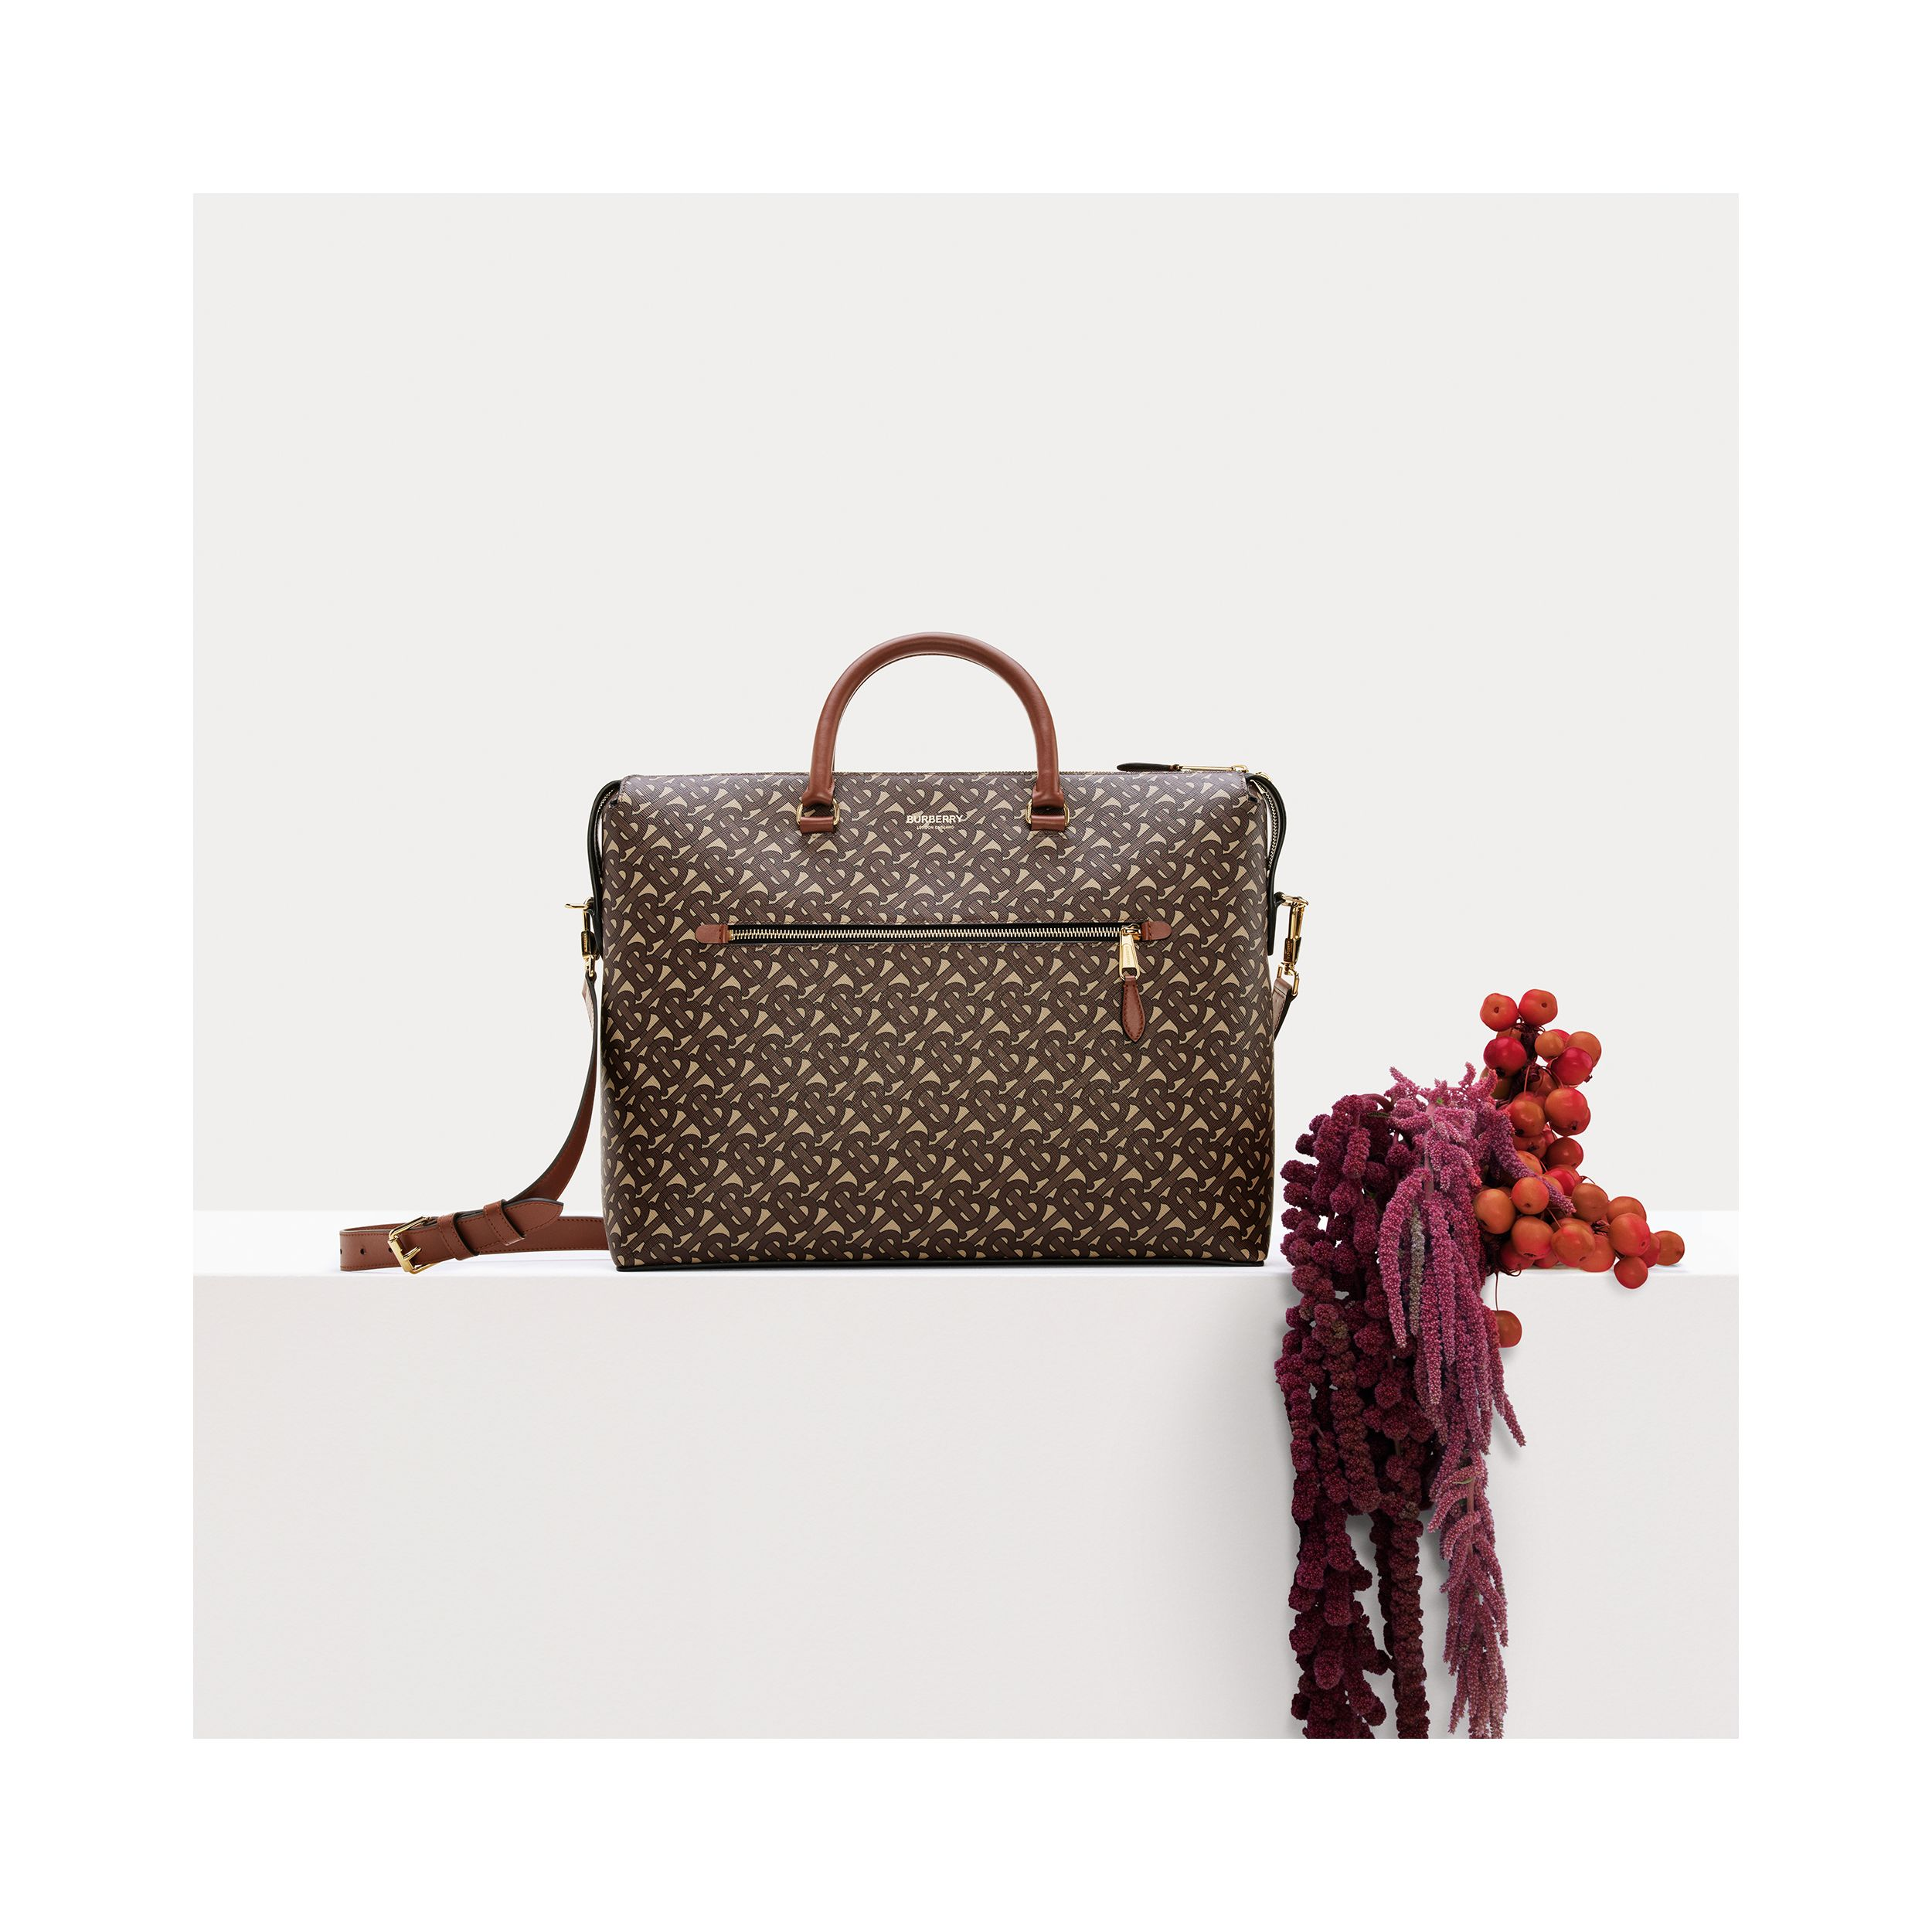 Attaché-case en toile écologique Monogram (Brun Bride) - Homme | Burberry Canada - 2